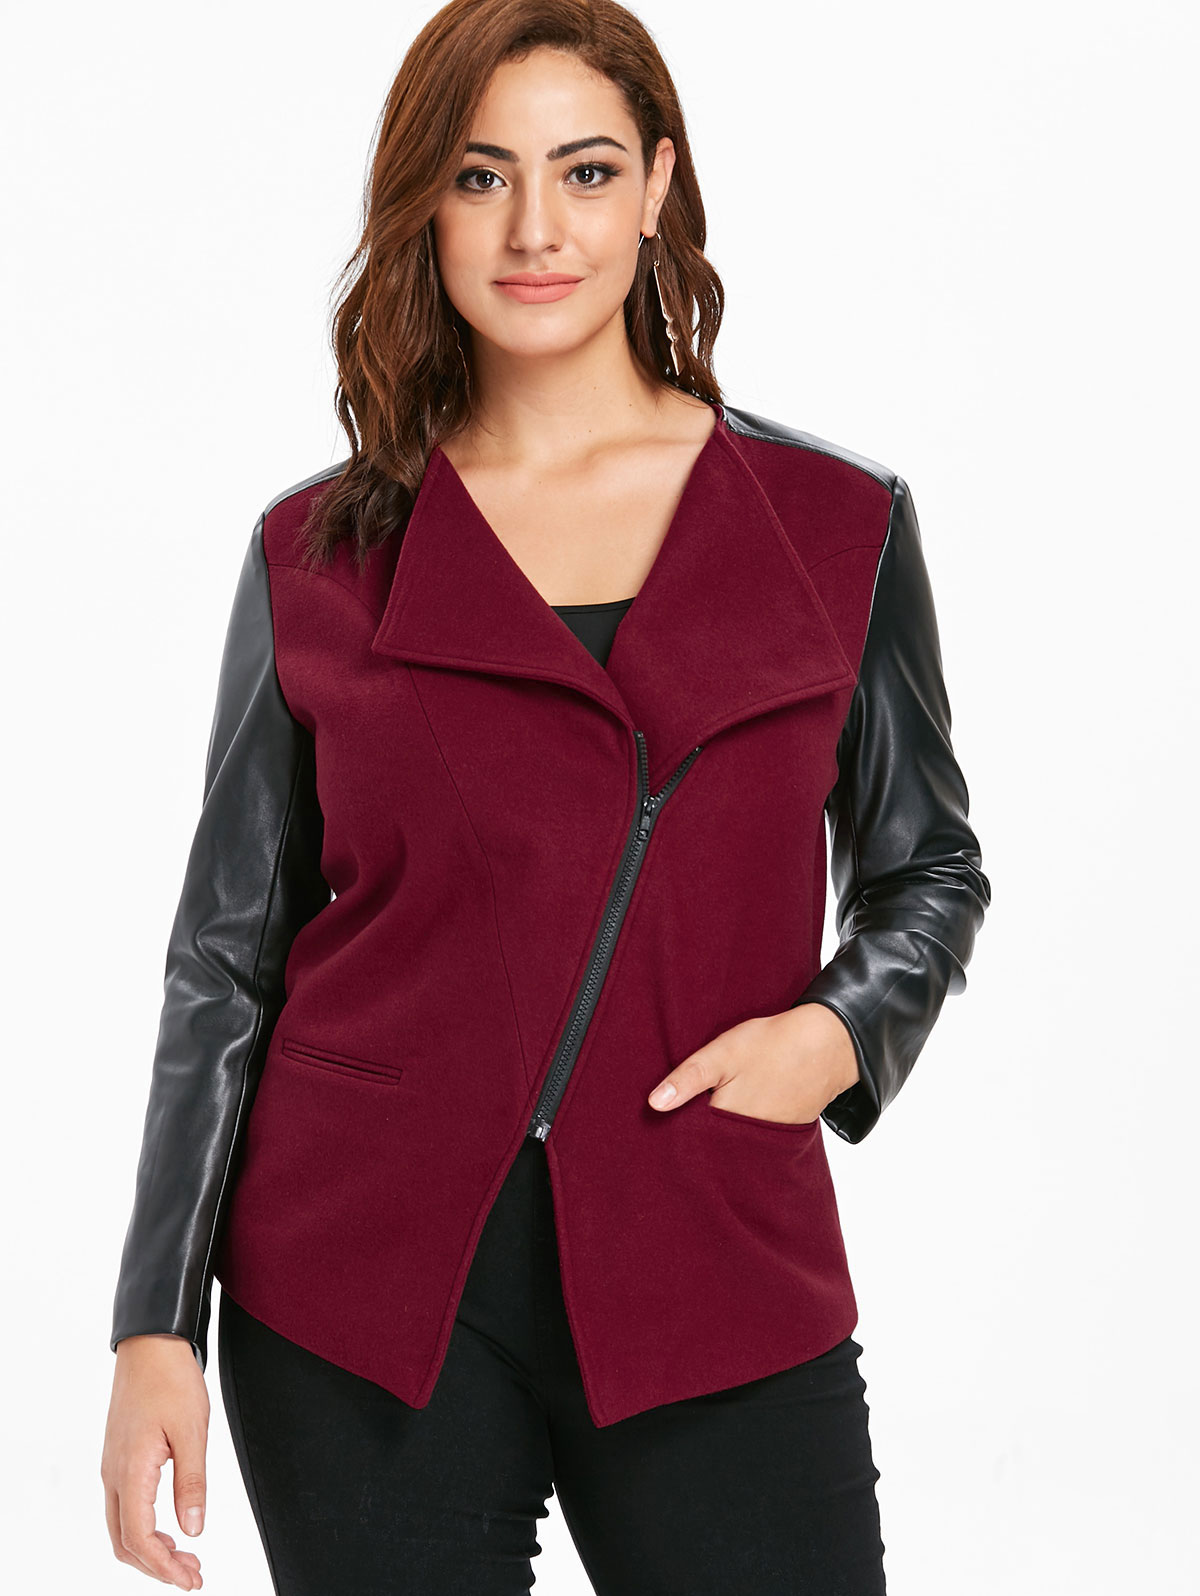 Plus Size Leather Color Jacket Women Long Sleeve Outerwear